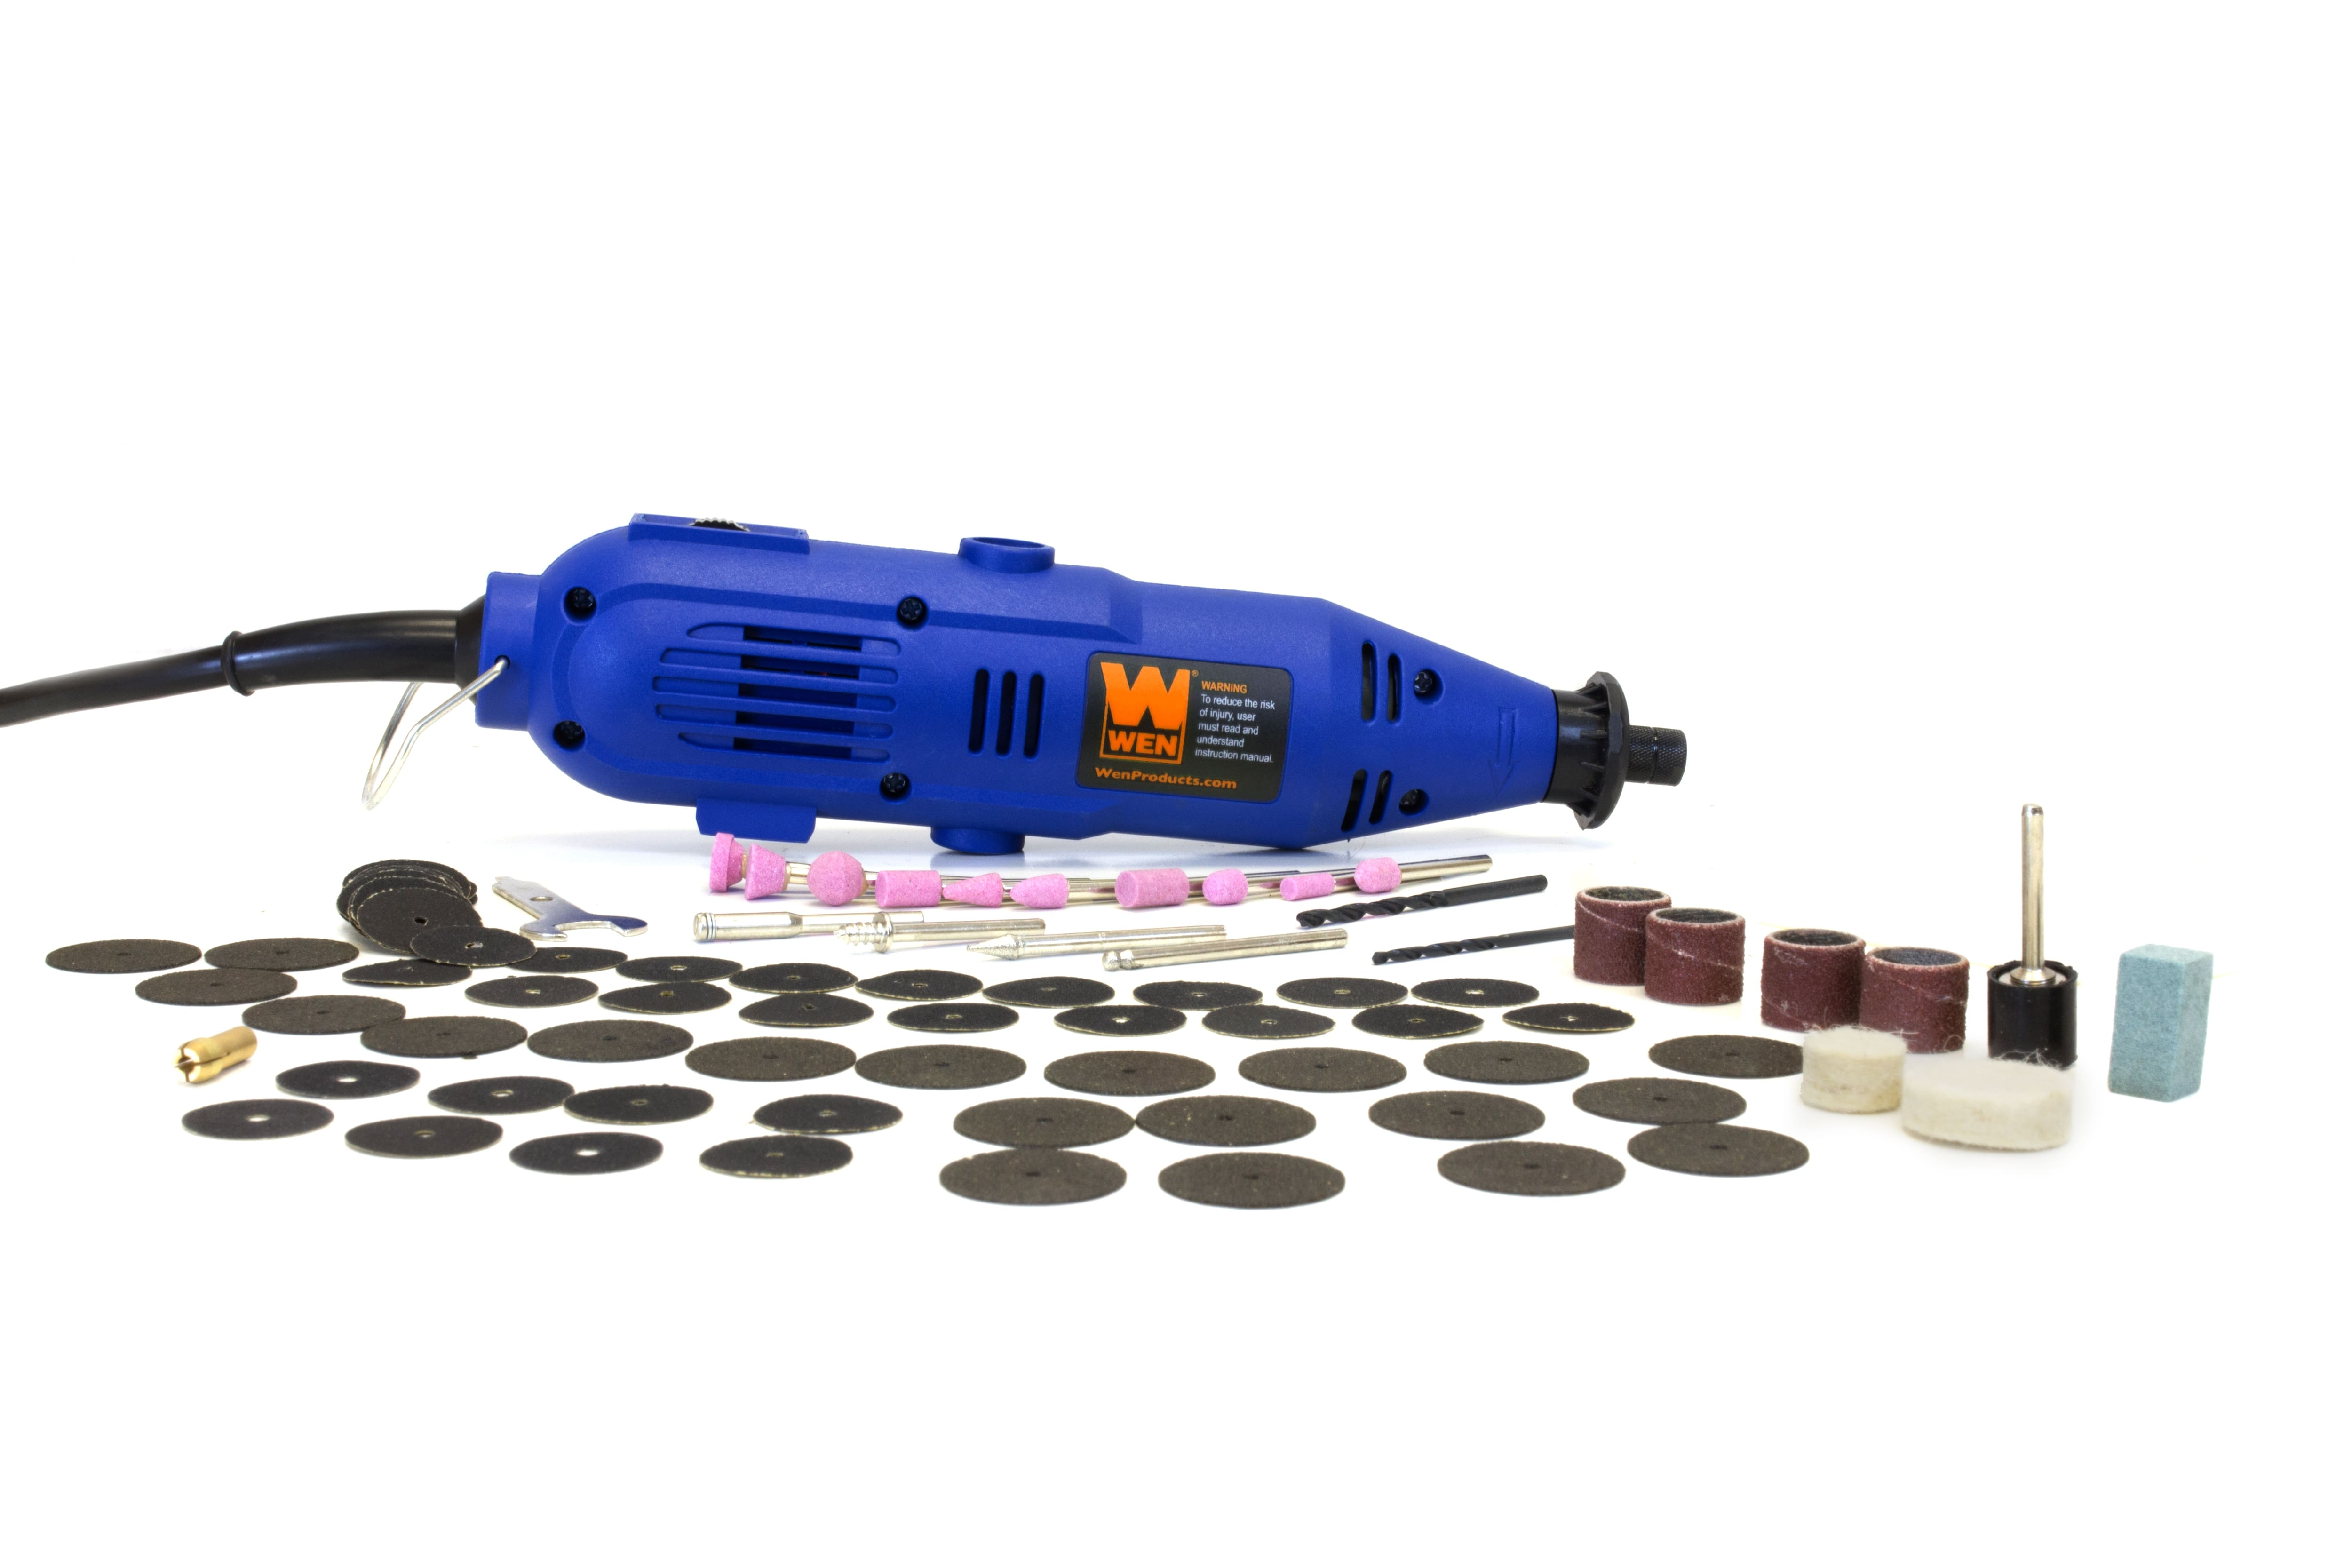 Wen 2307 Variable Speed Rotary Tool Kit No Flex Shaft 100 Accessories $13.67 @walmart or amazon